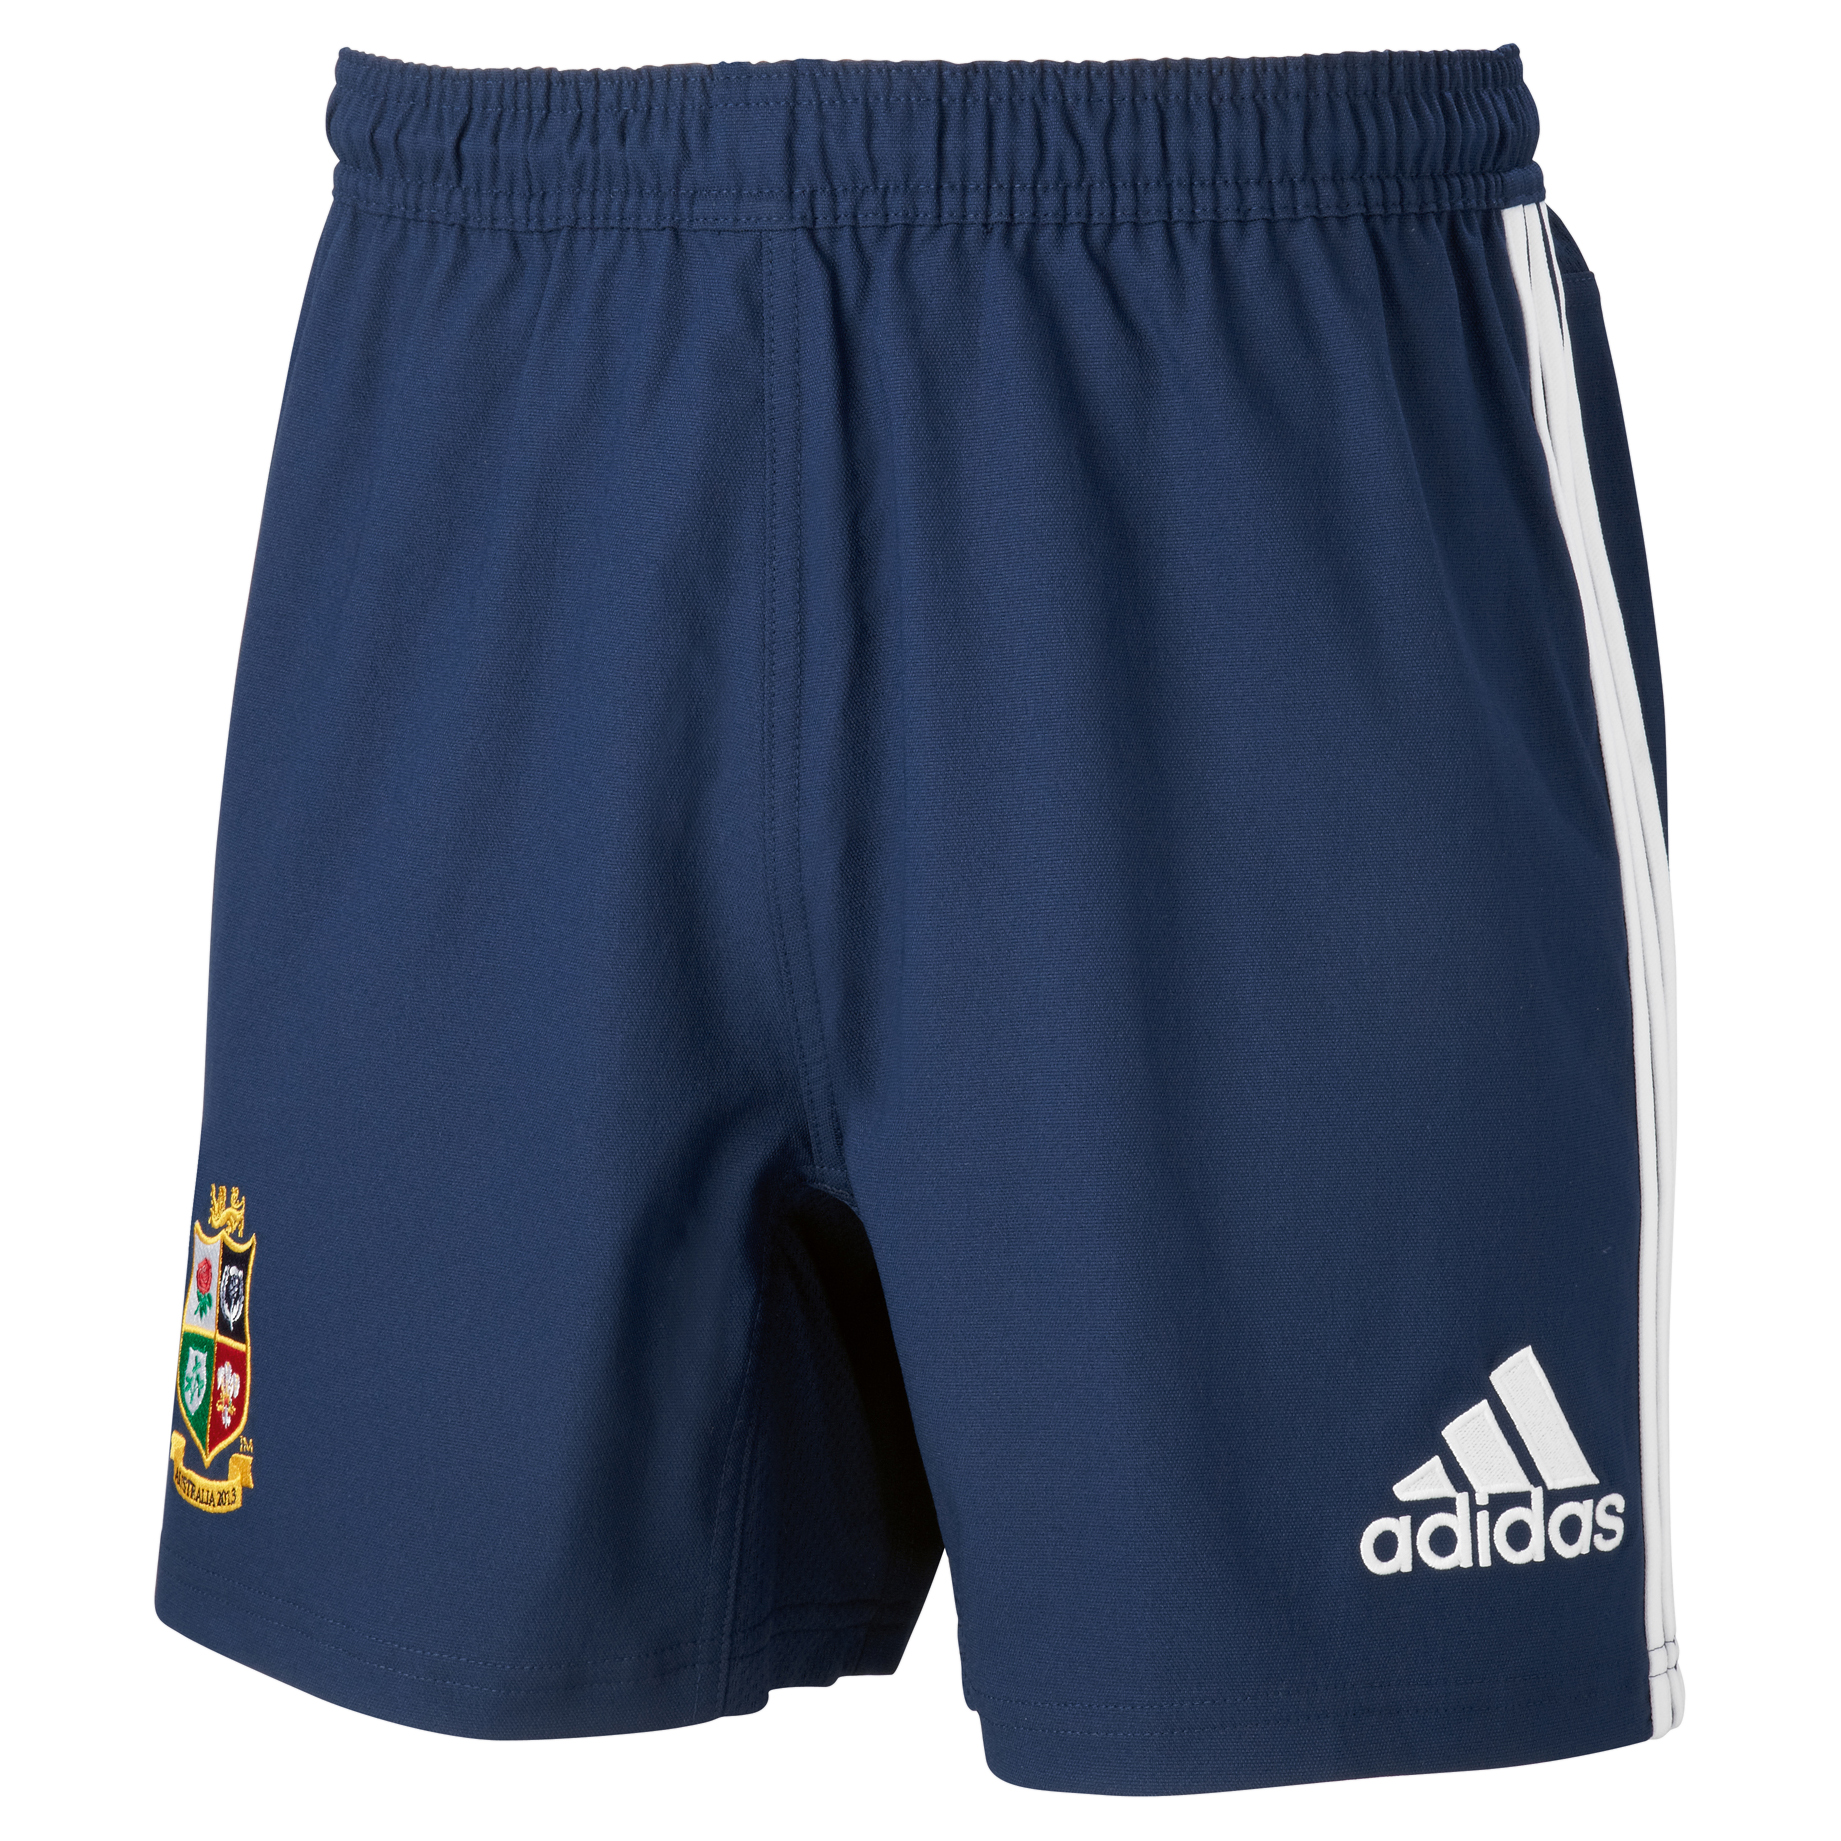 adidas British and Irish Lions Training Shorts - Collegiate Navy/White